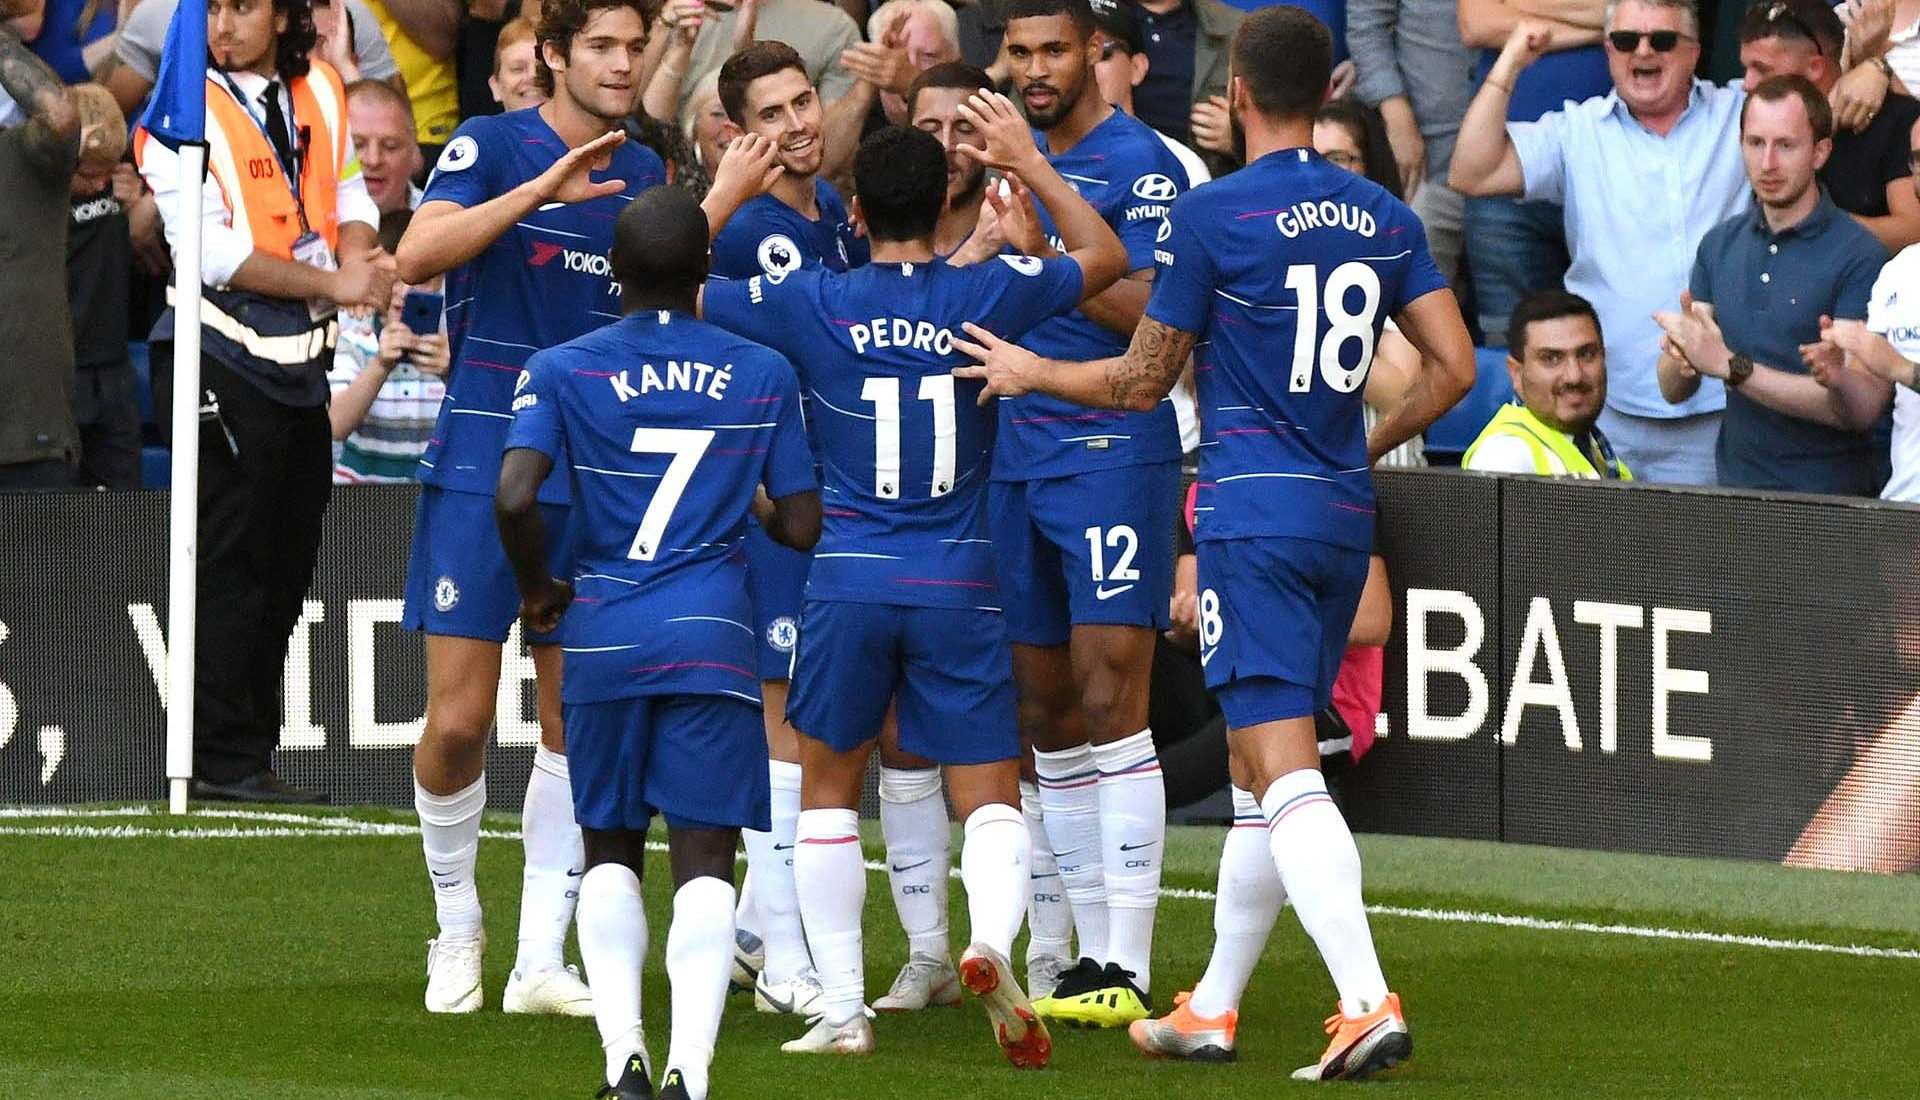 Eden Hazard celebrates with teammates after scoring his team's second goal during the Premier League match between Chelsea FC and AFC Bournemouth at Stamford Bridge on September 1, 2018 in London.